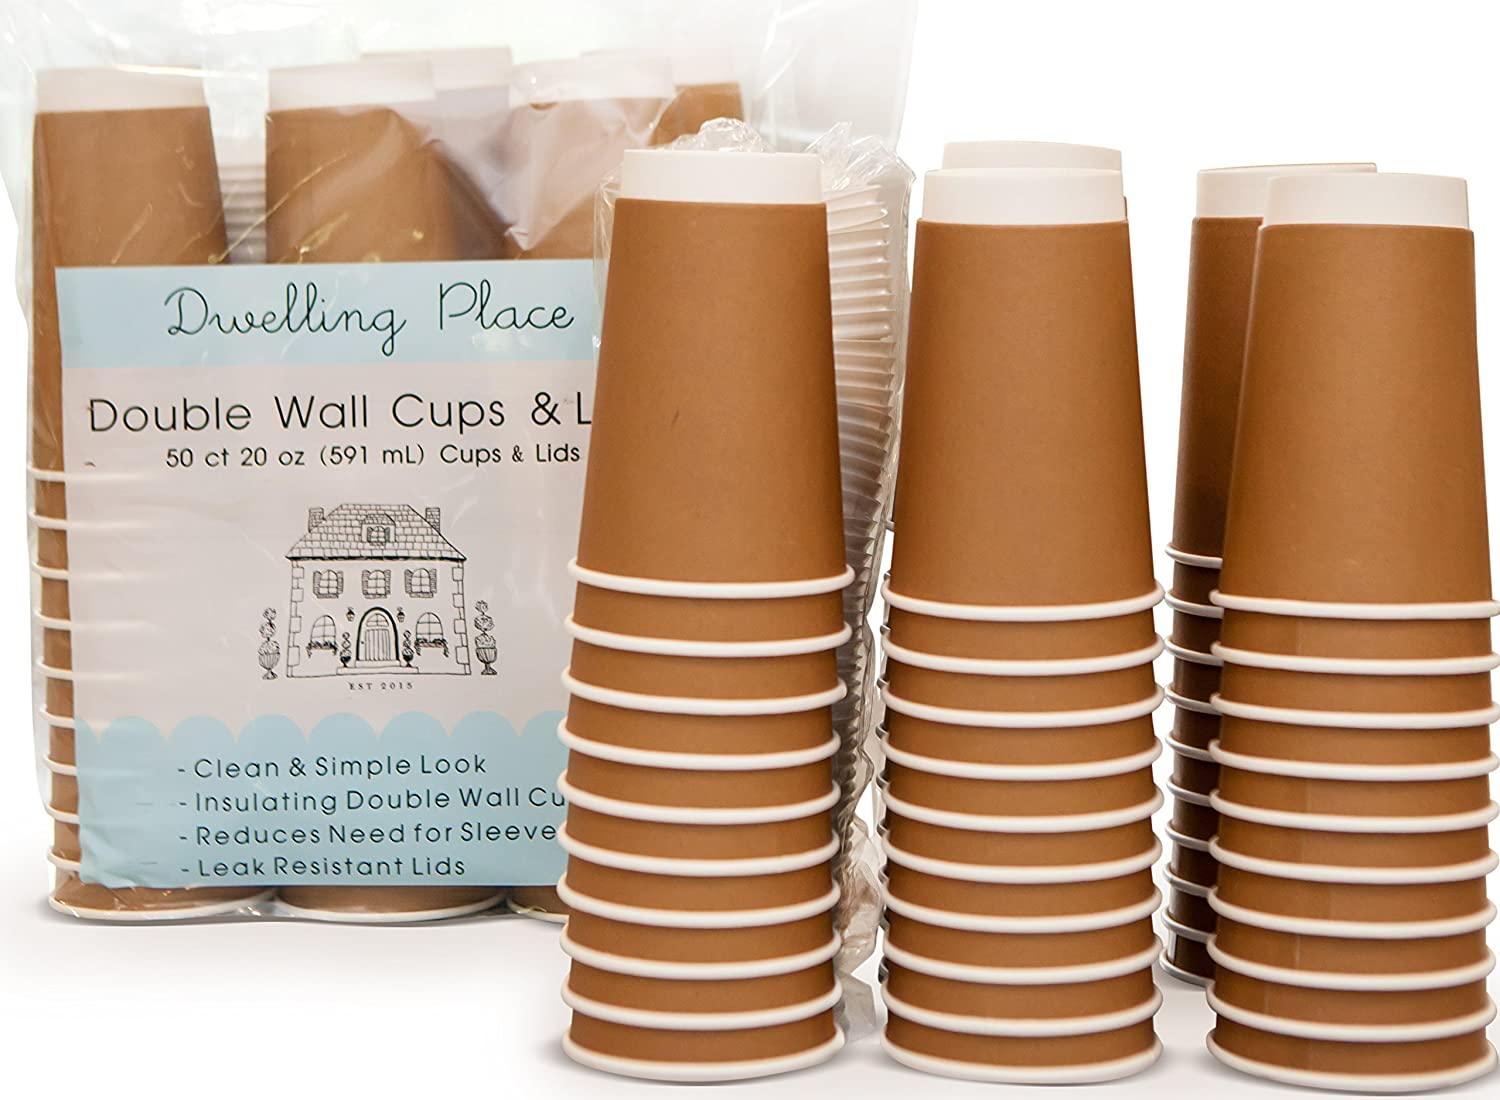 74c6960087e Premium 16 oz Disposable Coffee Cups with Lids (50 Ct) - Use your Coffee  Maker then Pour into this Paper Travel Cup, Skip Starbucks & Brew your Own  Beans, ...